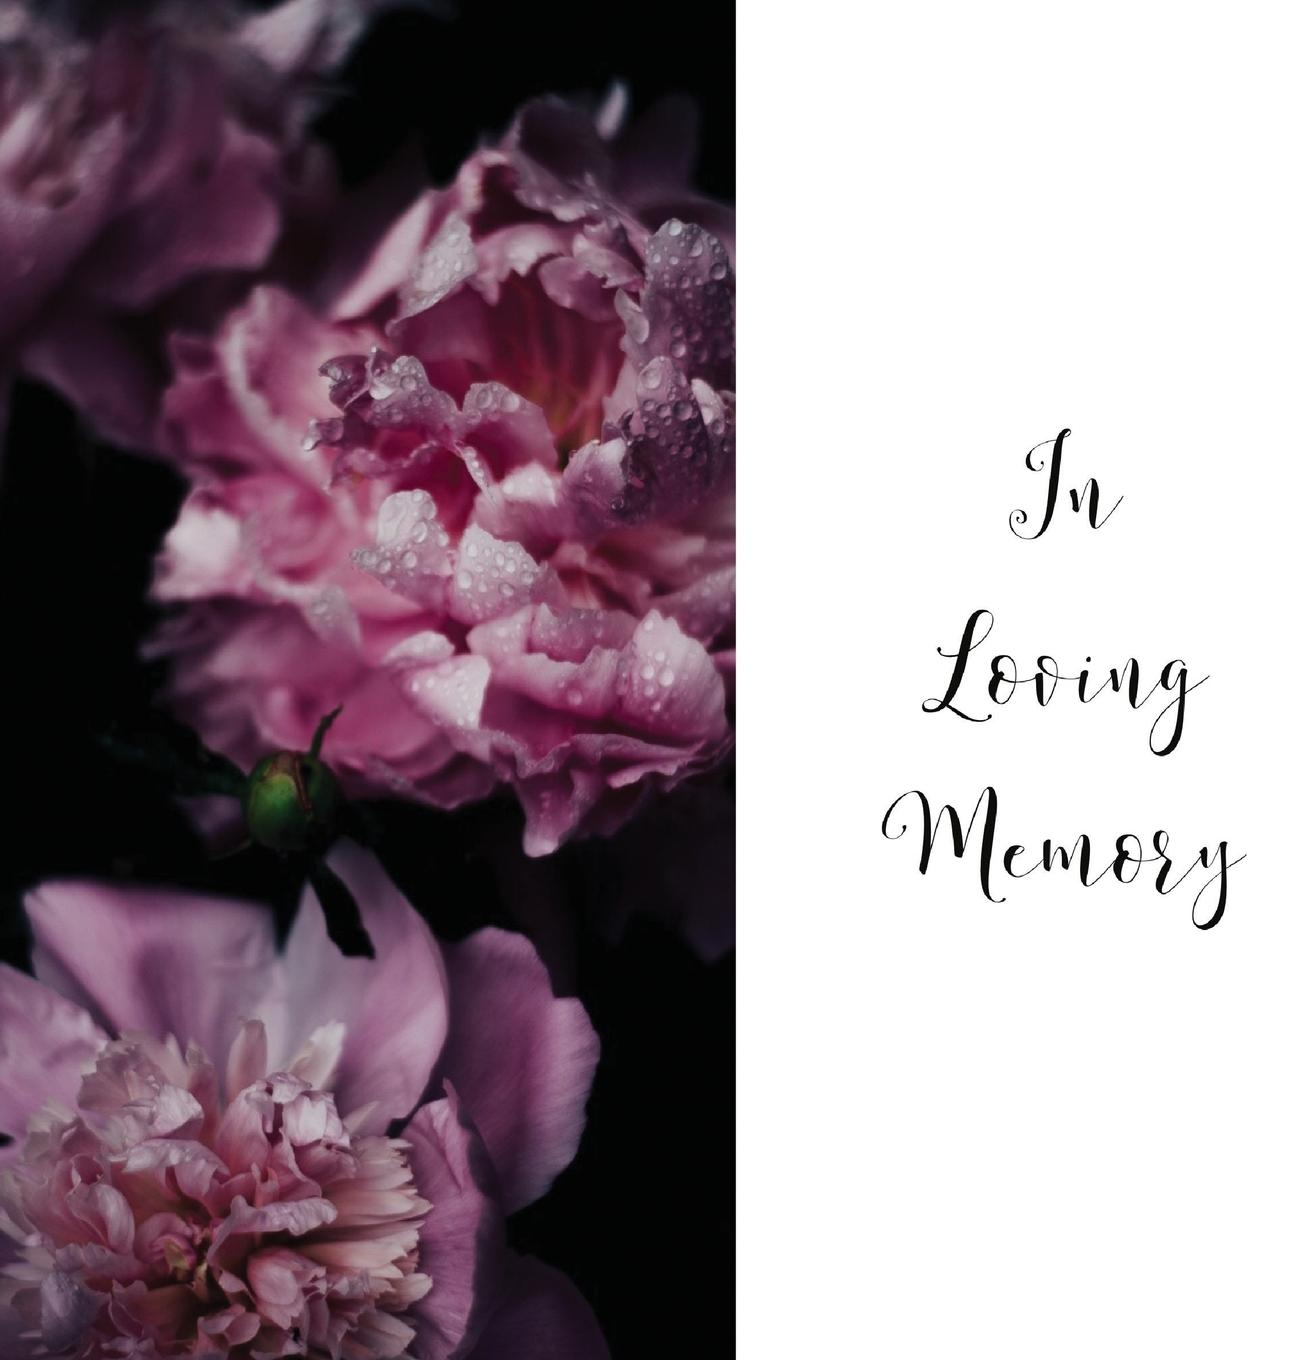 In Loving Memory Funeral Guest Book, Celebration of Life, Wake, Loss, Memorial Service, Condolence Book, Church, Funeral Home, Thoughts and in Memory Guest Book (Hardback) (Hardcover)